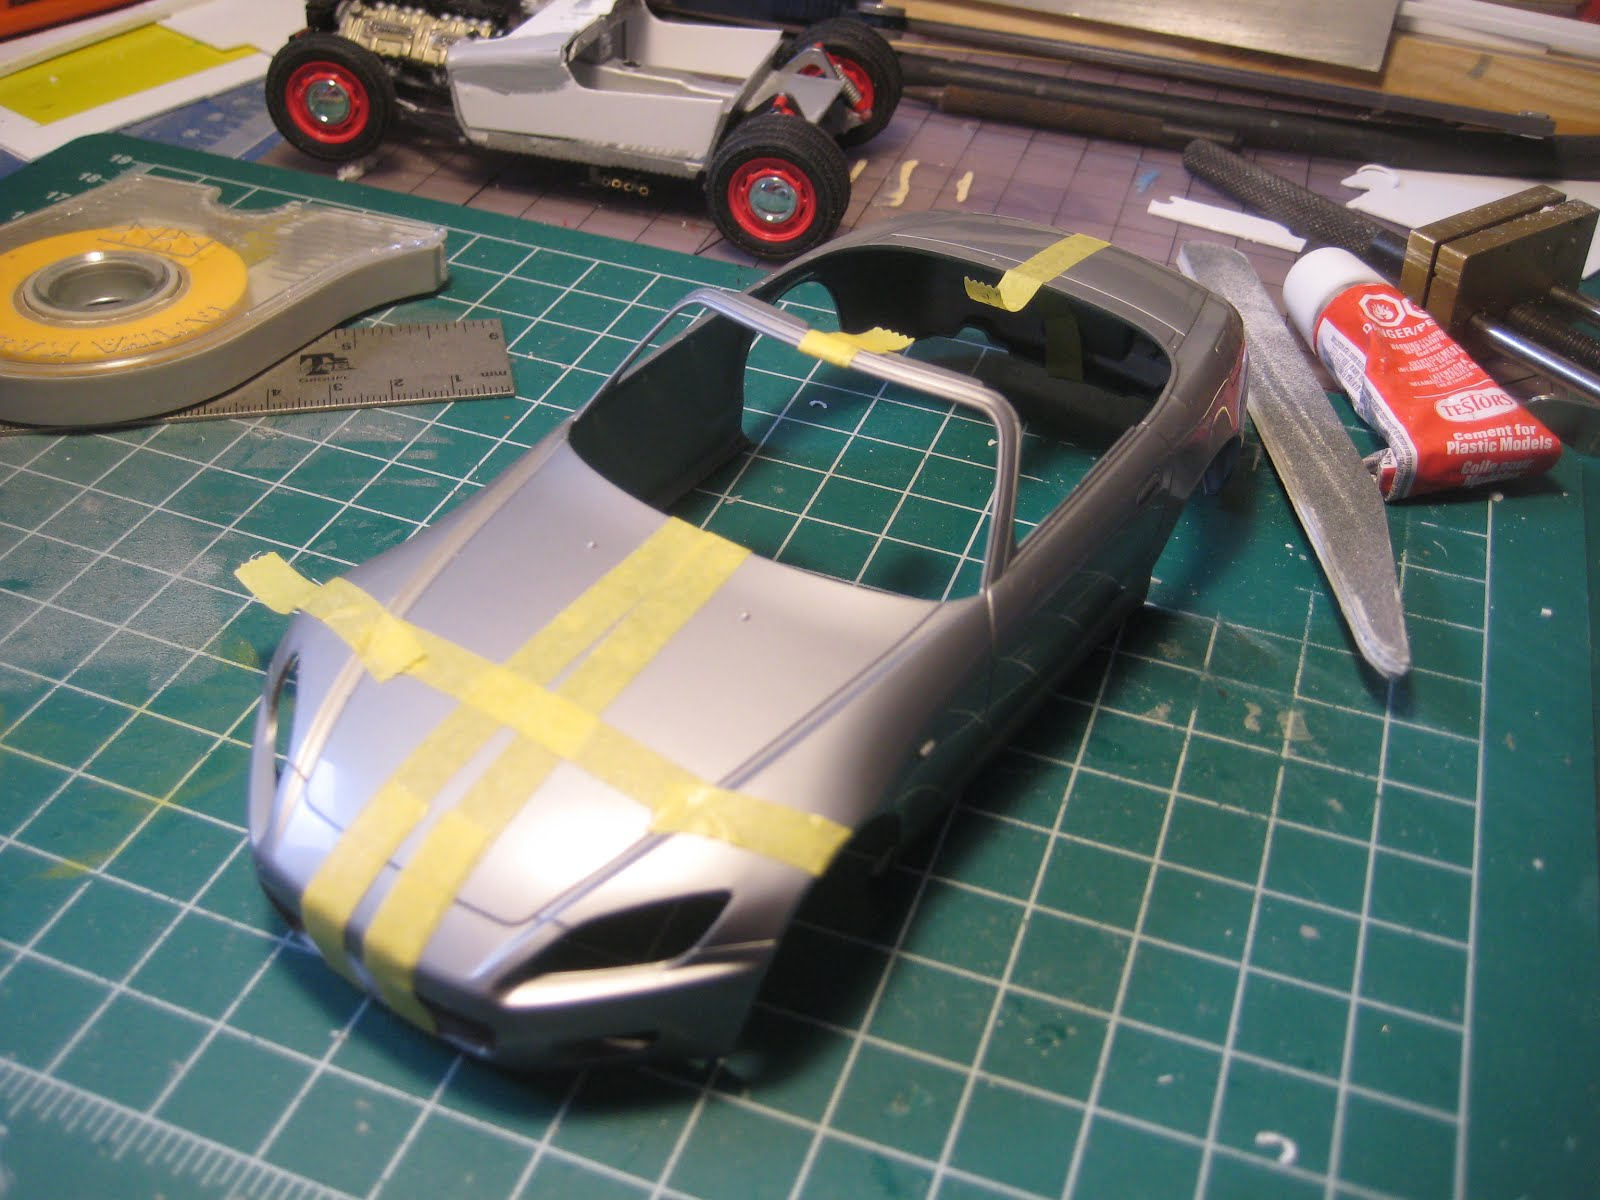 medium resolution of so the roadster started off with the s600 dashboard supported by a bit of brass tube